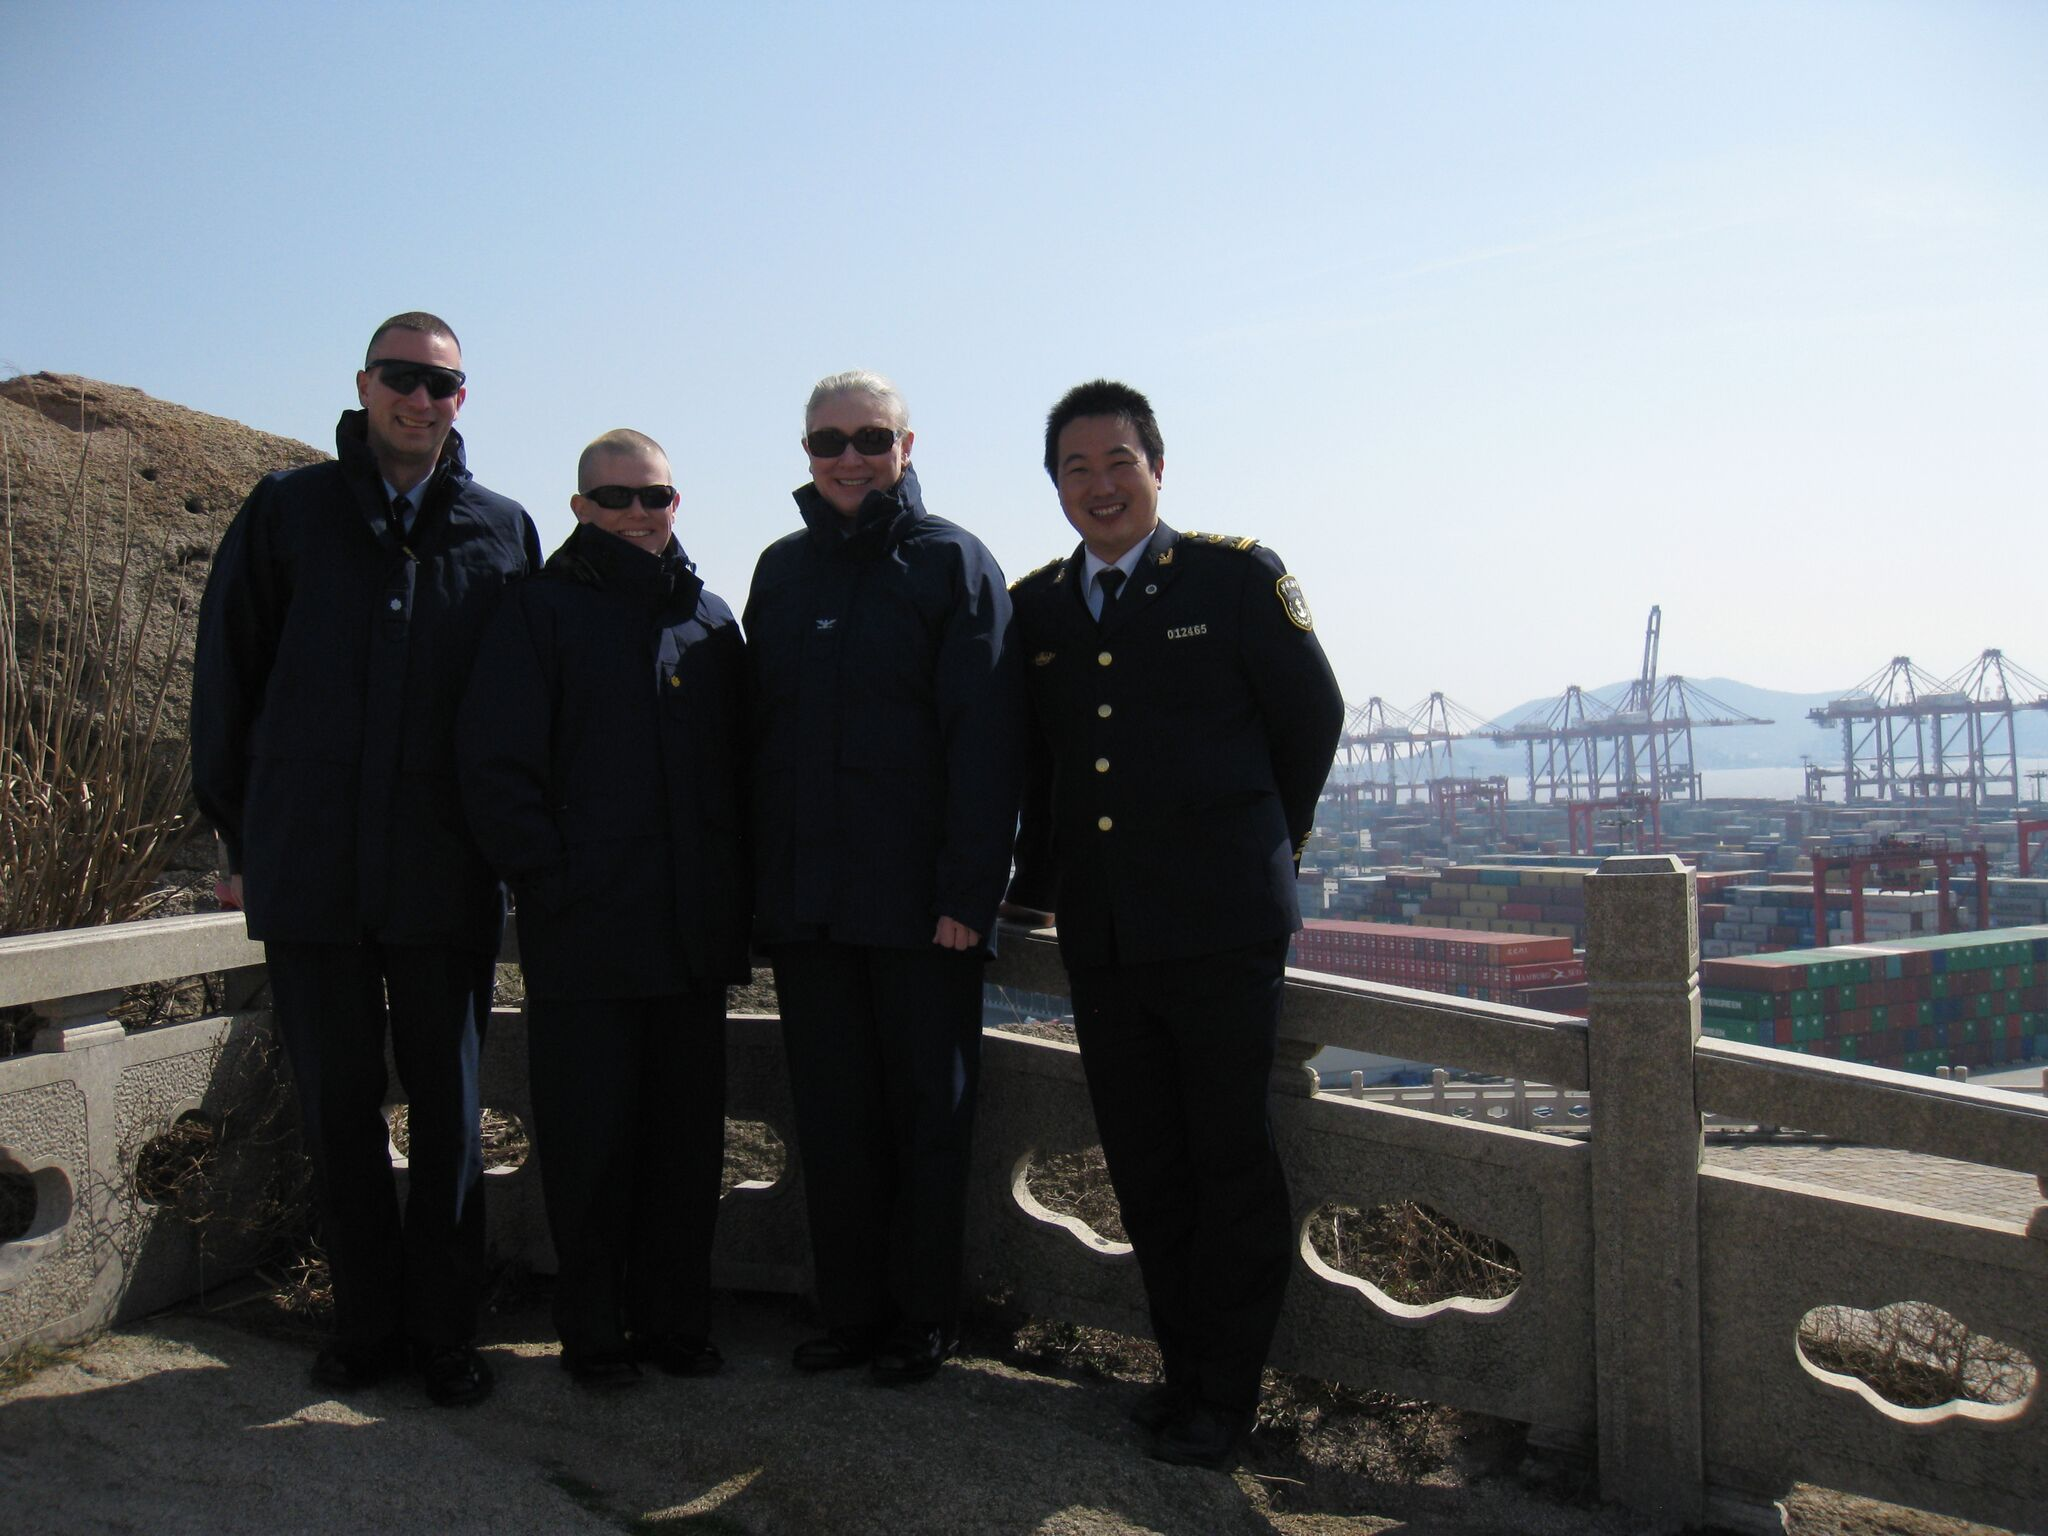 Team Evergreen at Shanghai port